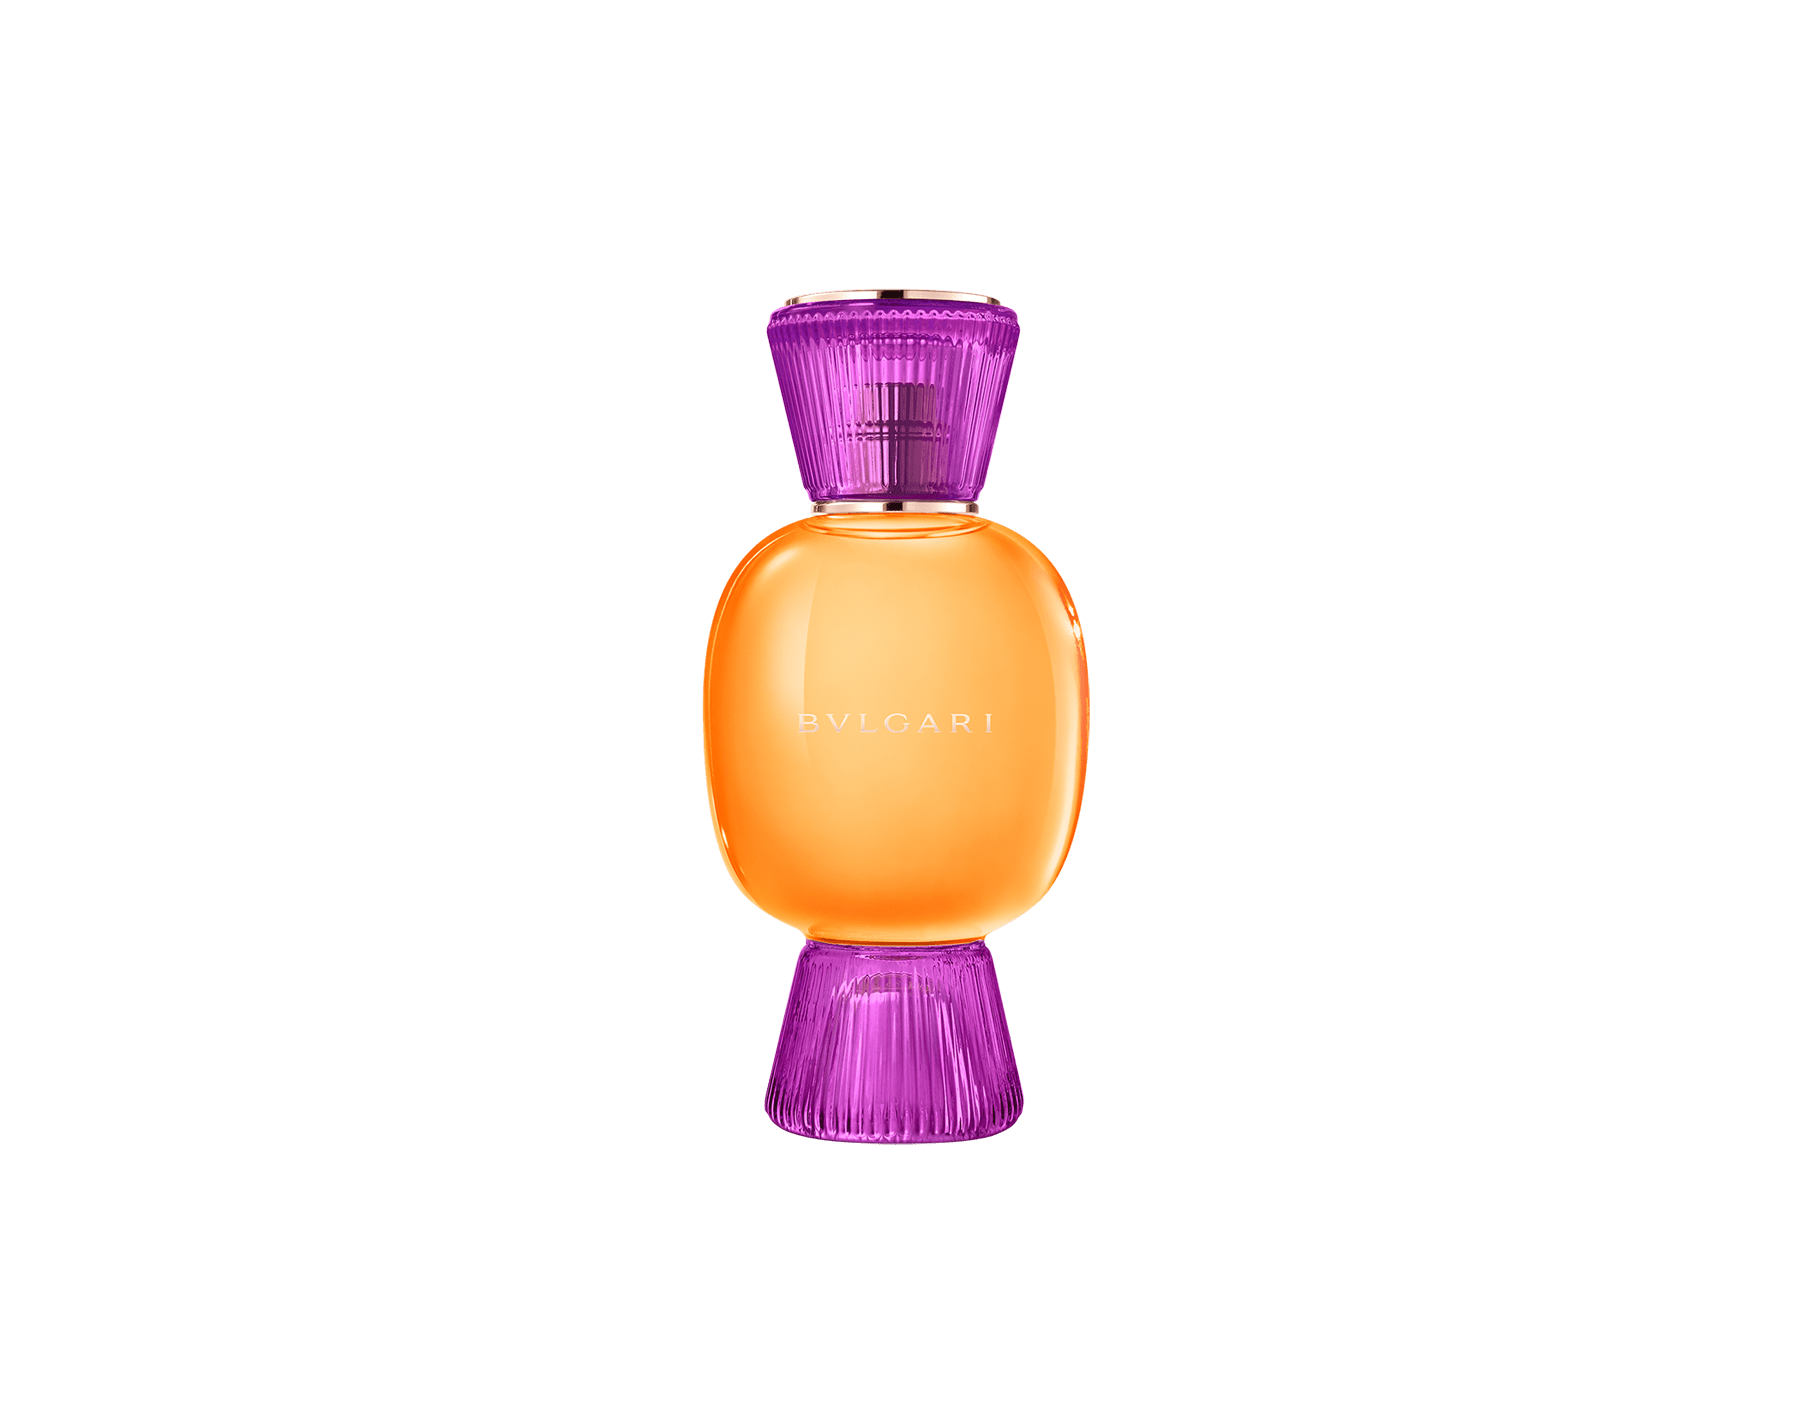 An exclusive perfume set, as bold and unique as you. The liquorous floriental Rock'n'Rome Allegra Eau de Parfum blends with the joyful freshness of the Magnifying Bergamot Essence, creating an irresistible personalised women's perfume.  Perfume-Set-Rock-n-Rome-Eau-de-Parfum-and-Bergamot-Magnifying image 2